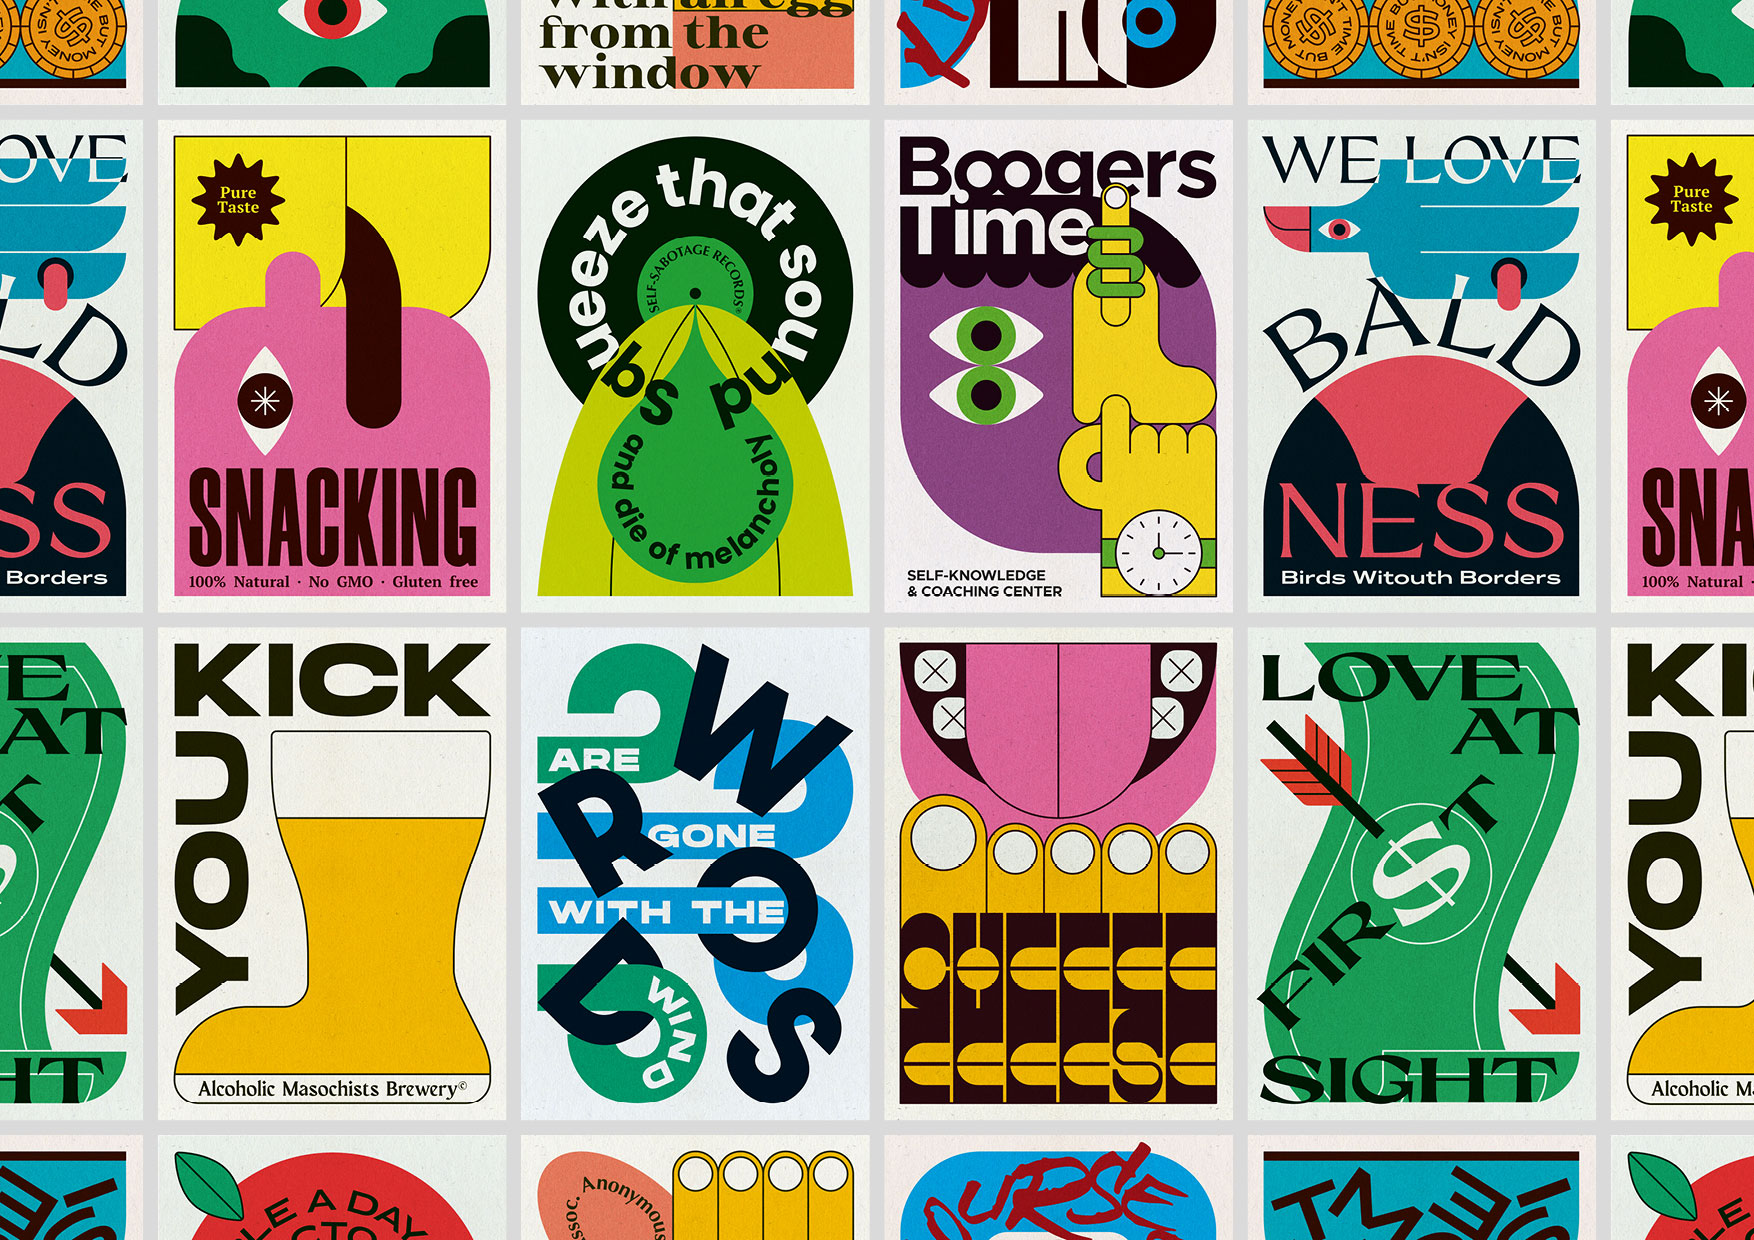 First World Limited Print Series Designed by Mario Carpe